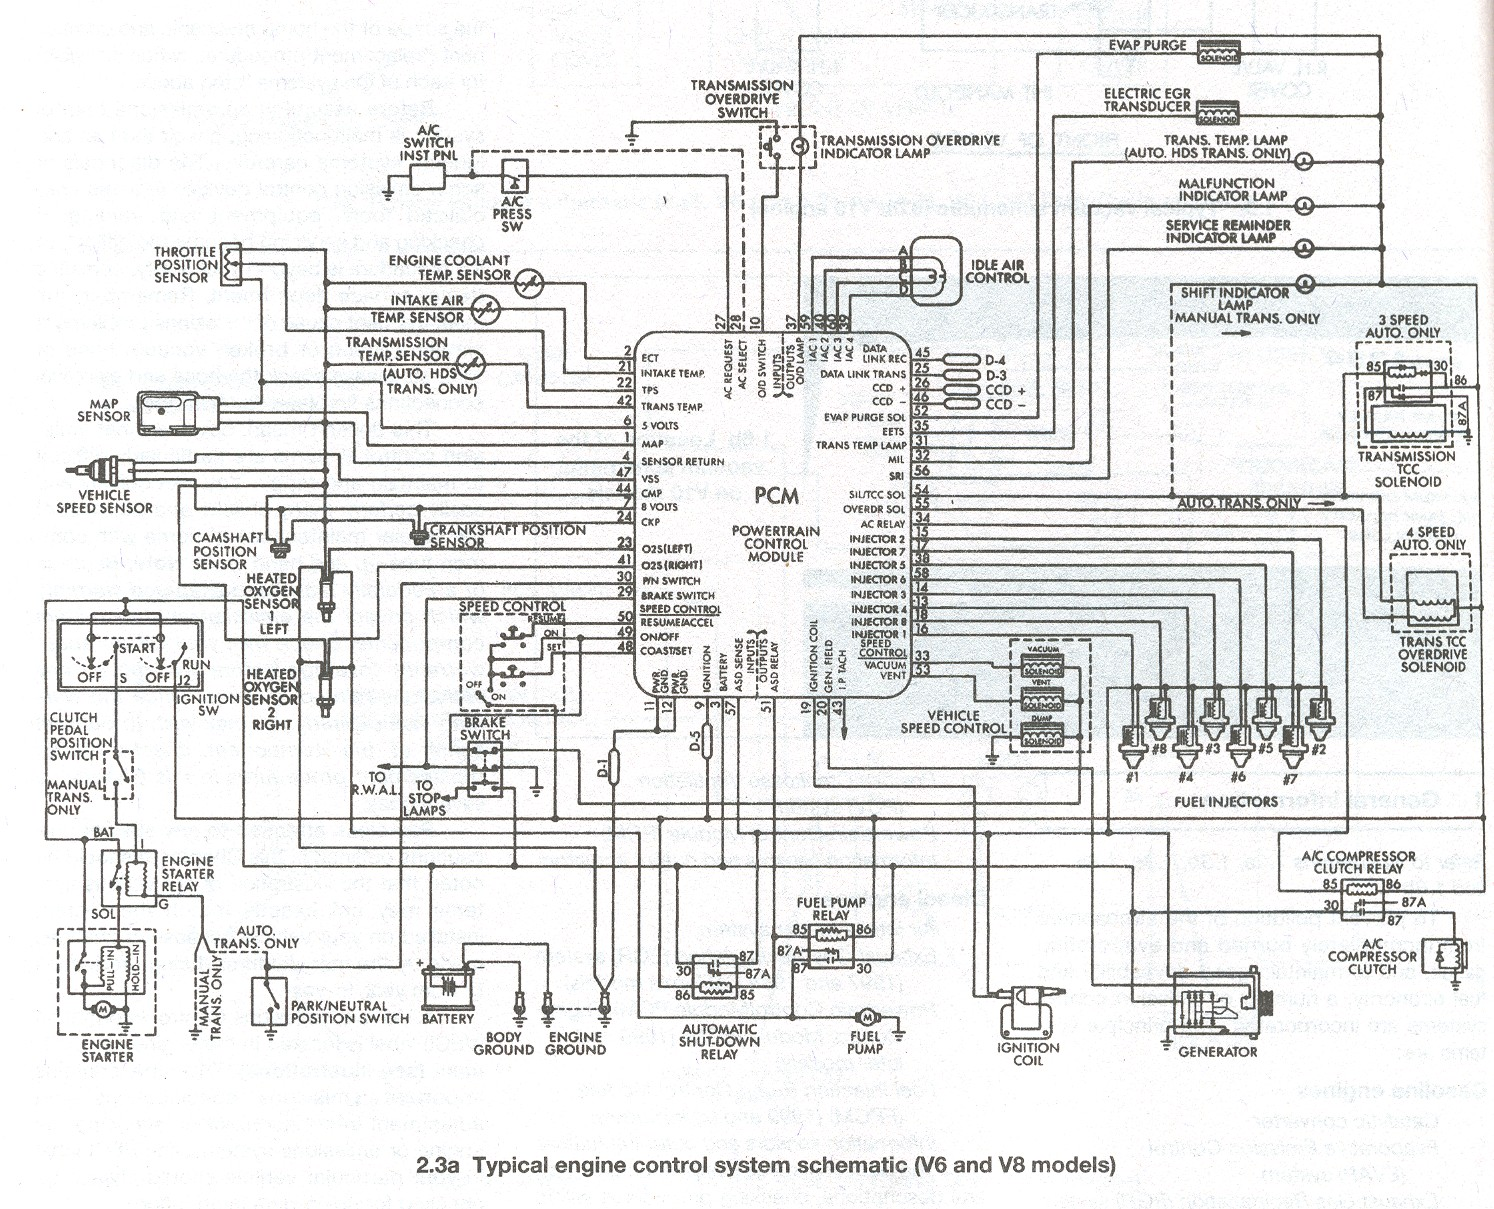 1975 dodge valiant wiring diagram schematic